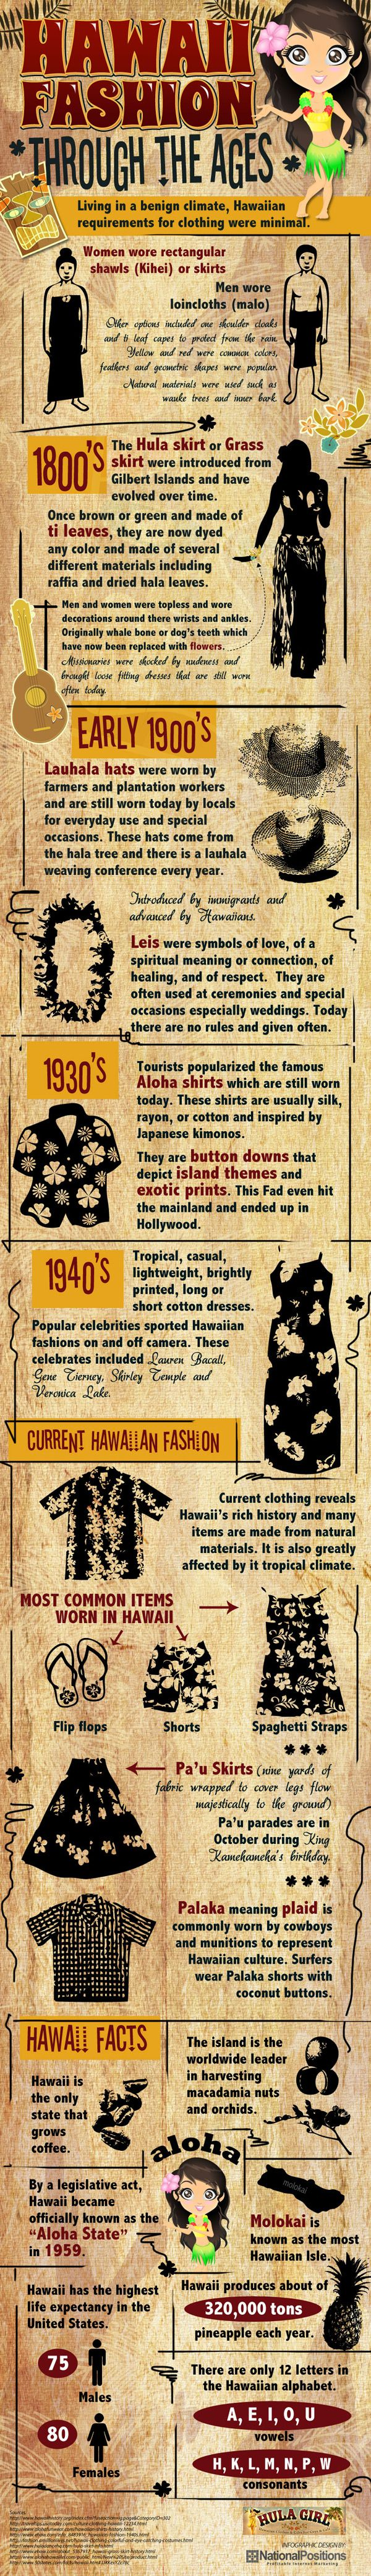 Infographic: Hawaii Fashion through the ages.